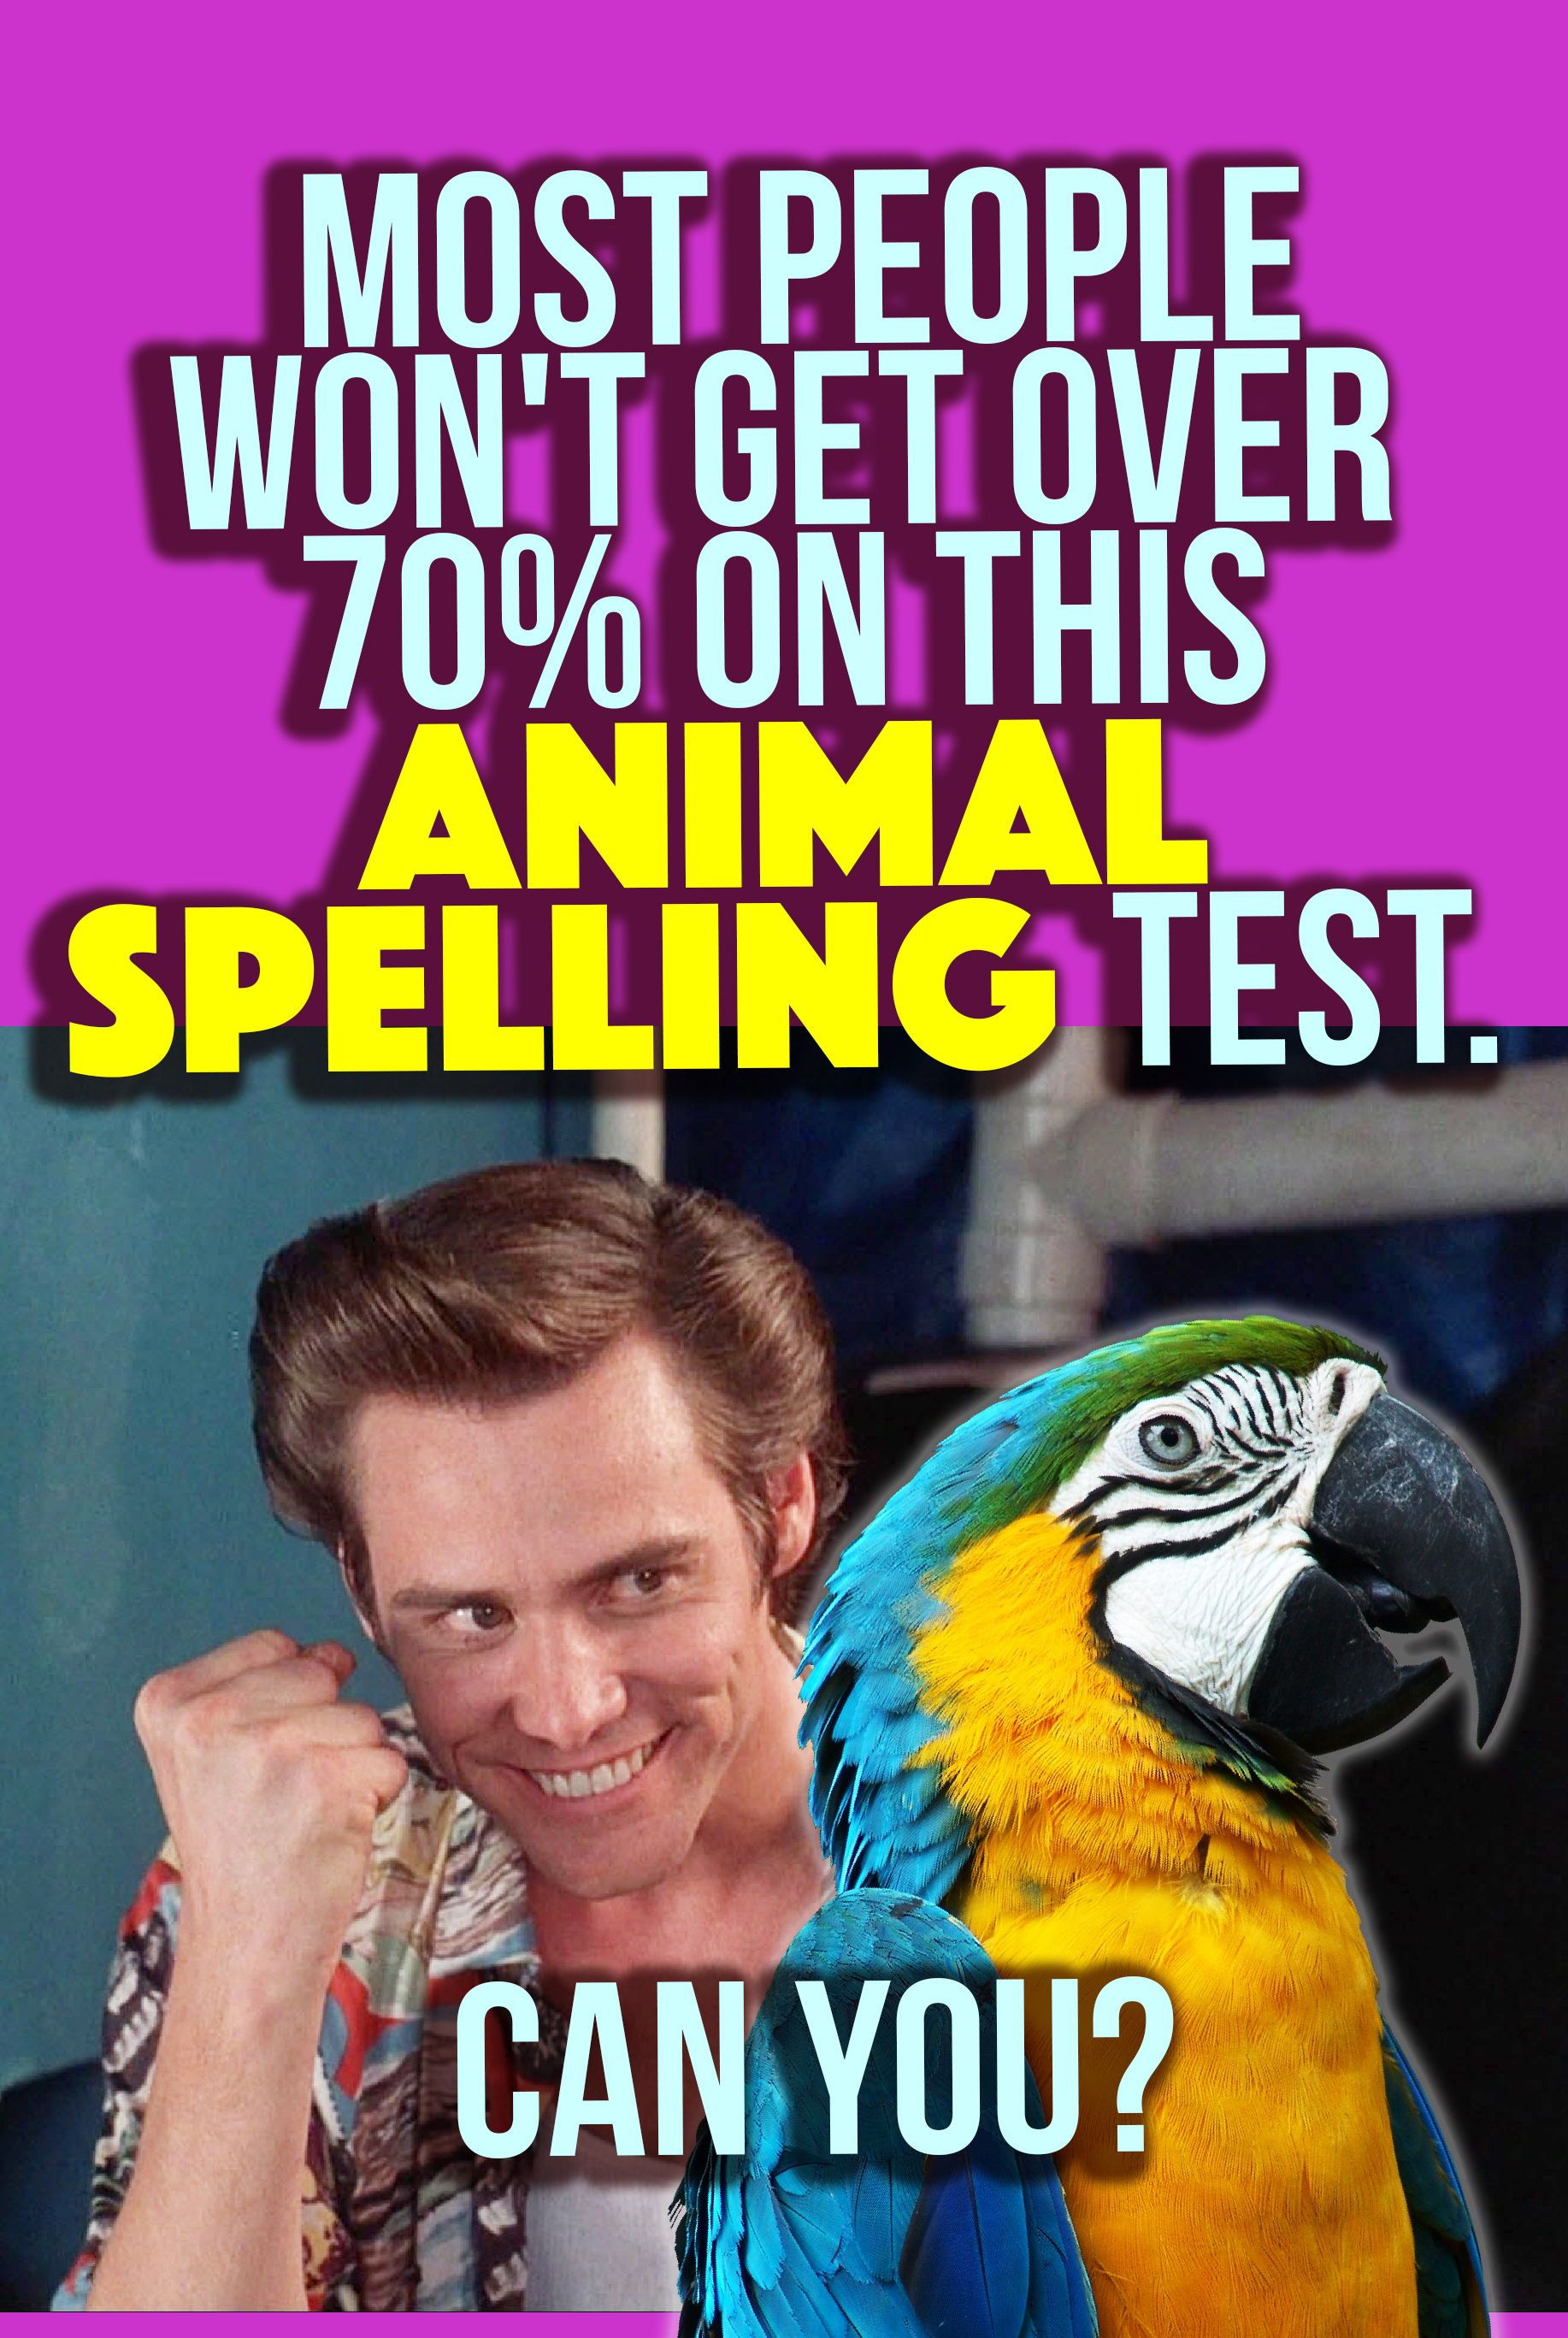 Quiz: Most People Won't Get Over 70% On This Animal Spelling Test